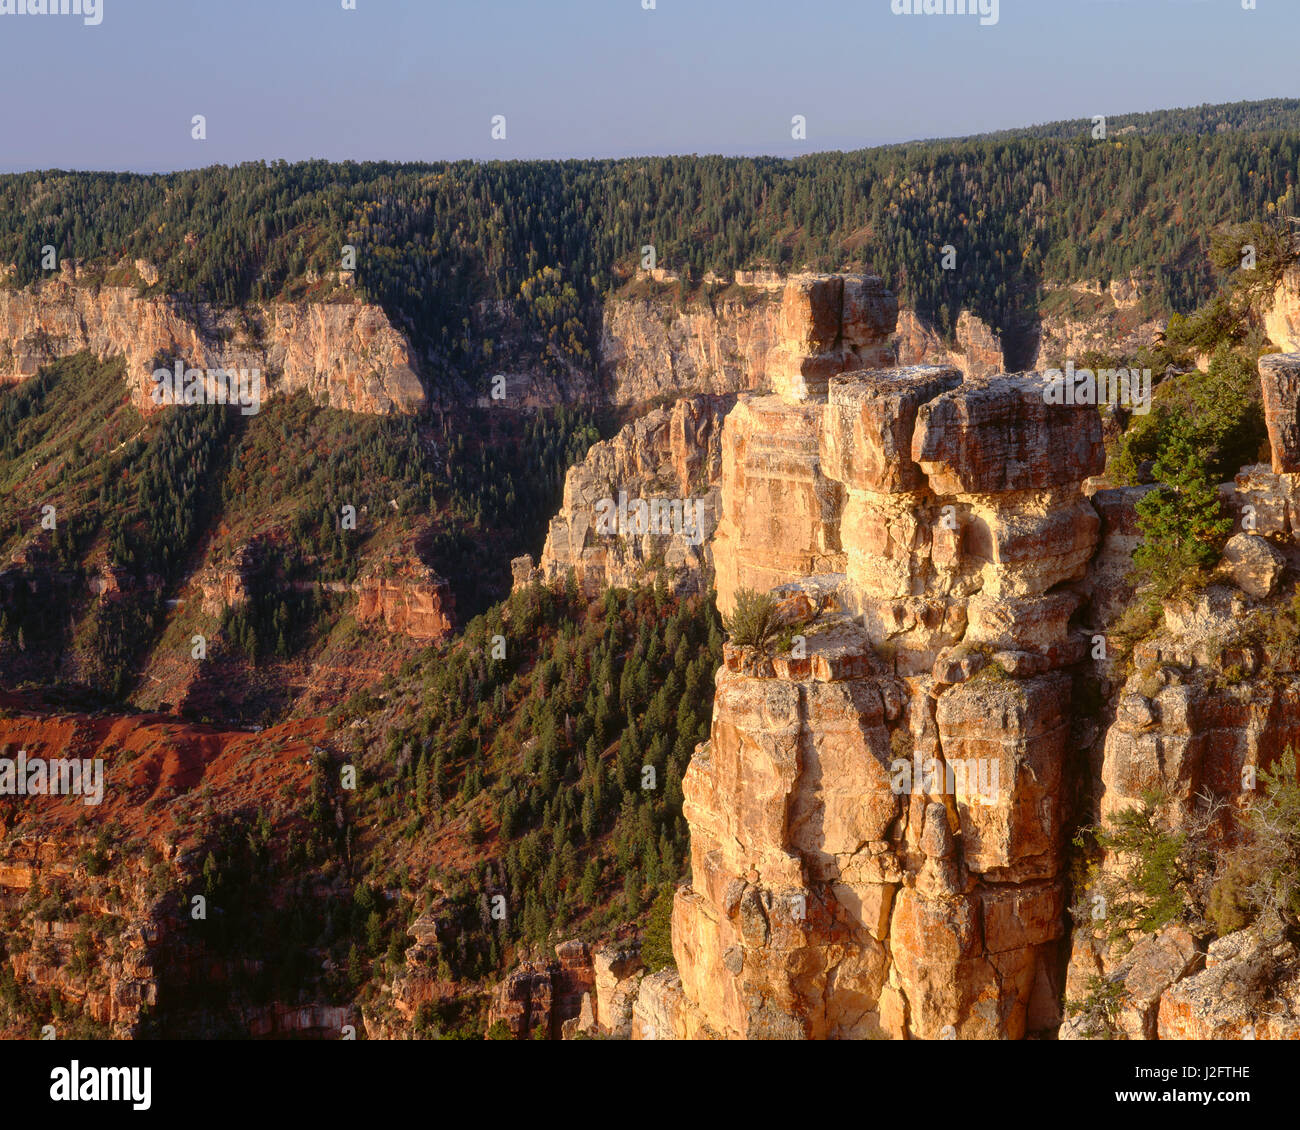 USA, Arizona, Grand Canyon National Park, Kaibab Limestone at Point Imperial with Walhalla Plateau in the distance. - Stock Image